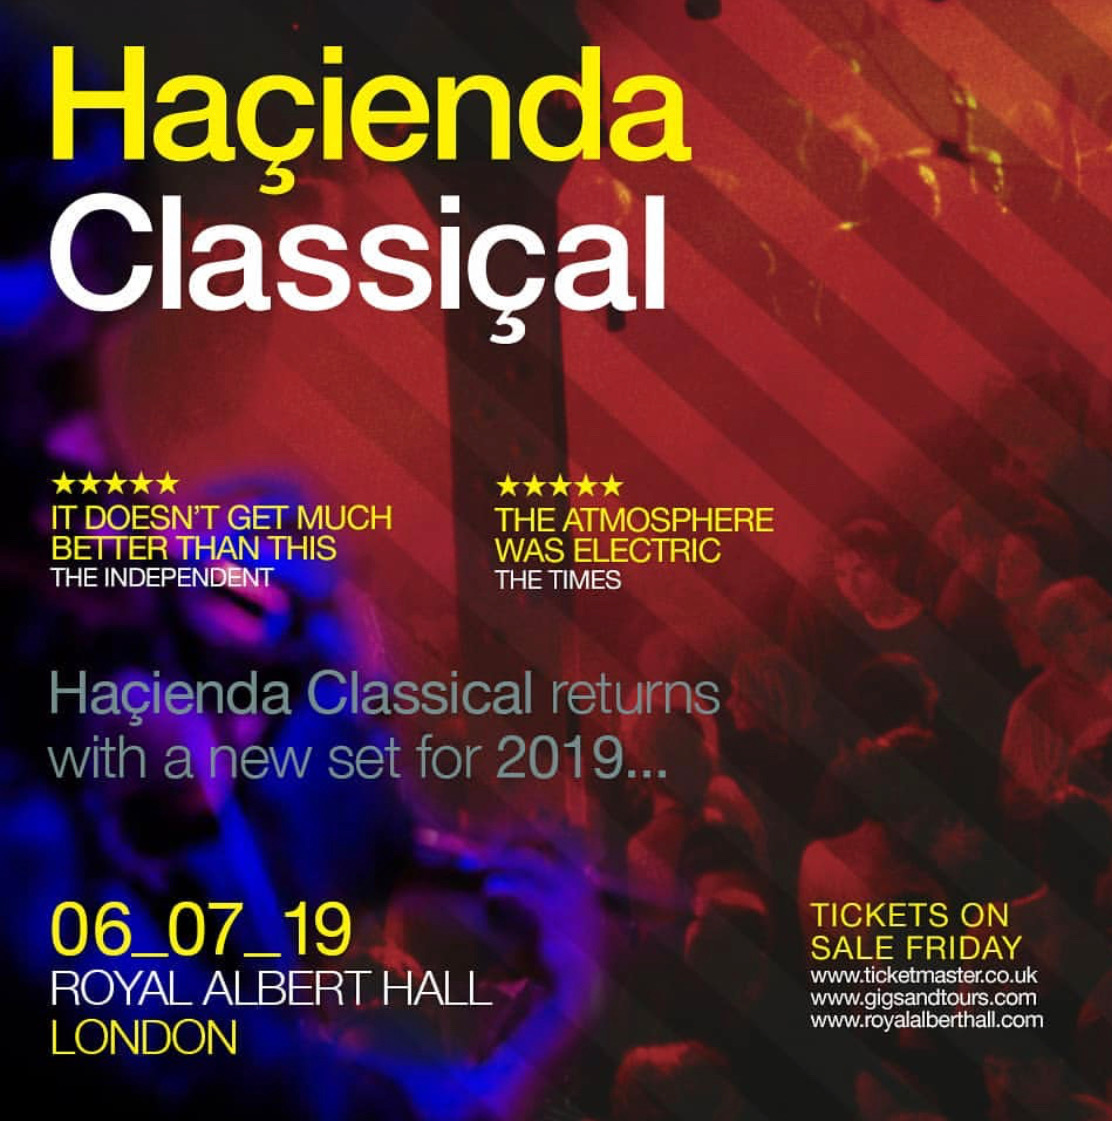 190706 Hacienda Classical Royal Albert Hall London.JPG